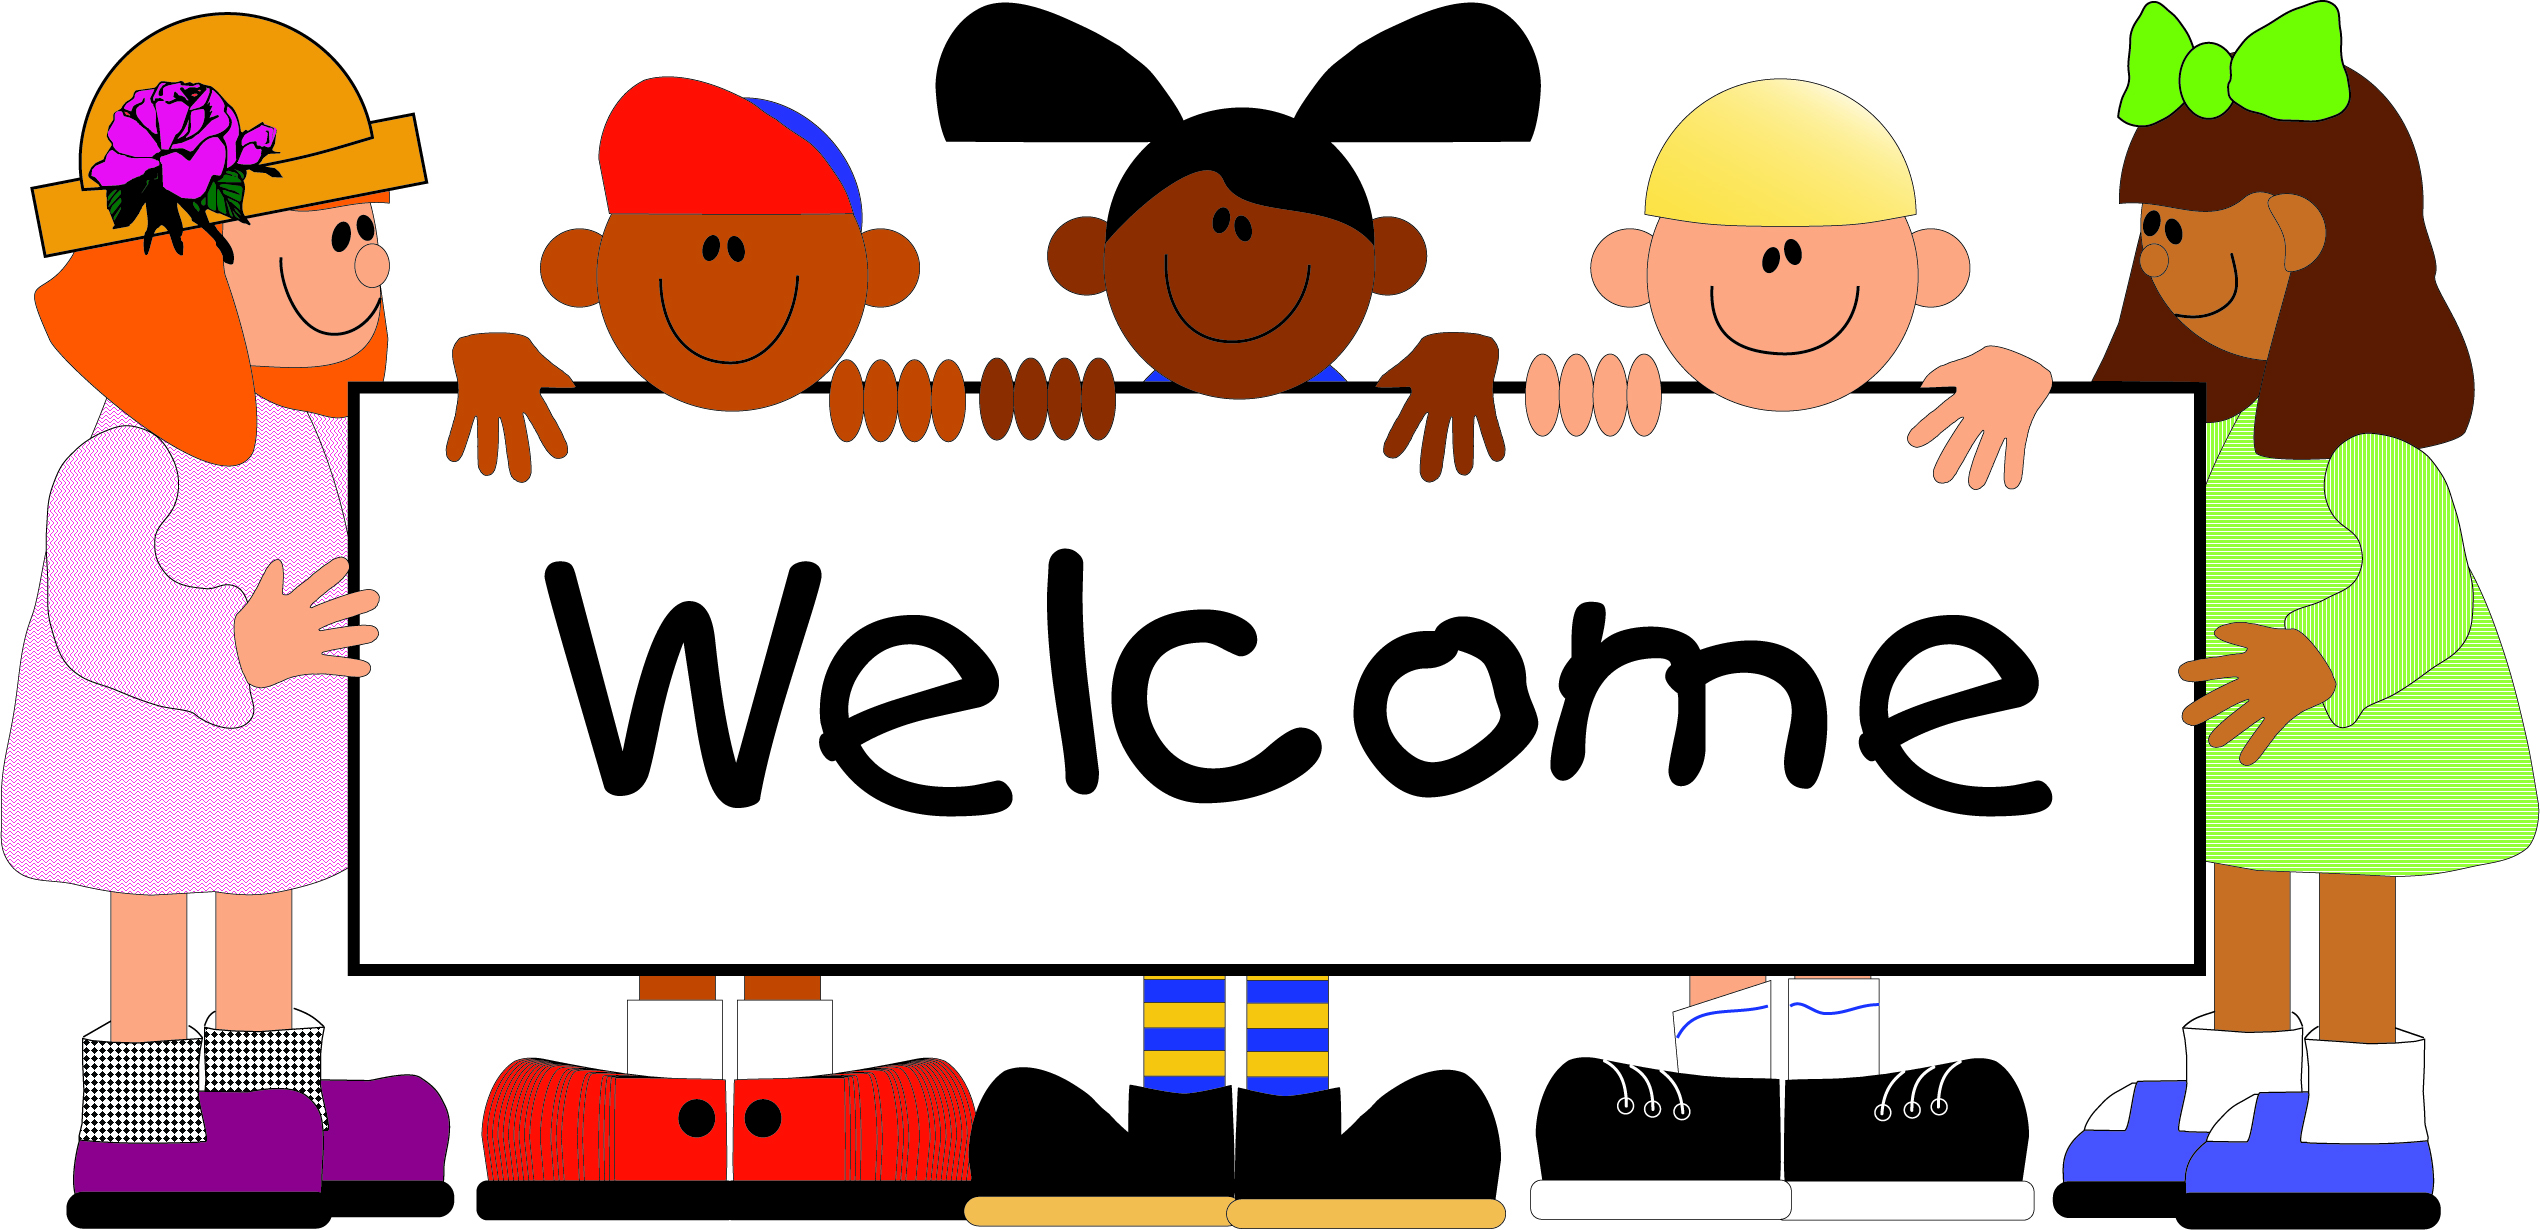 Image result for welcome kids image